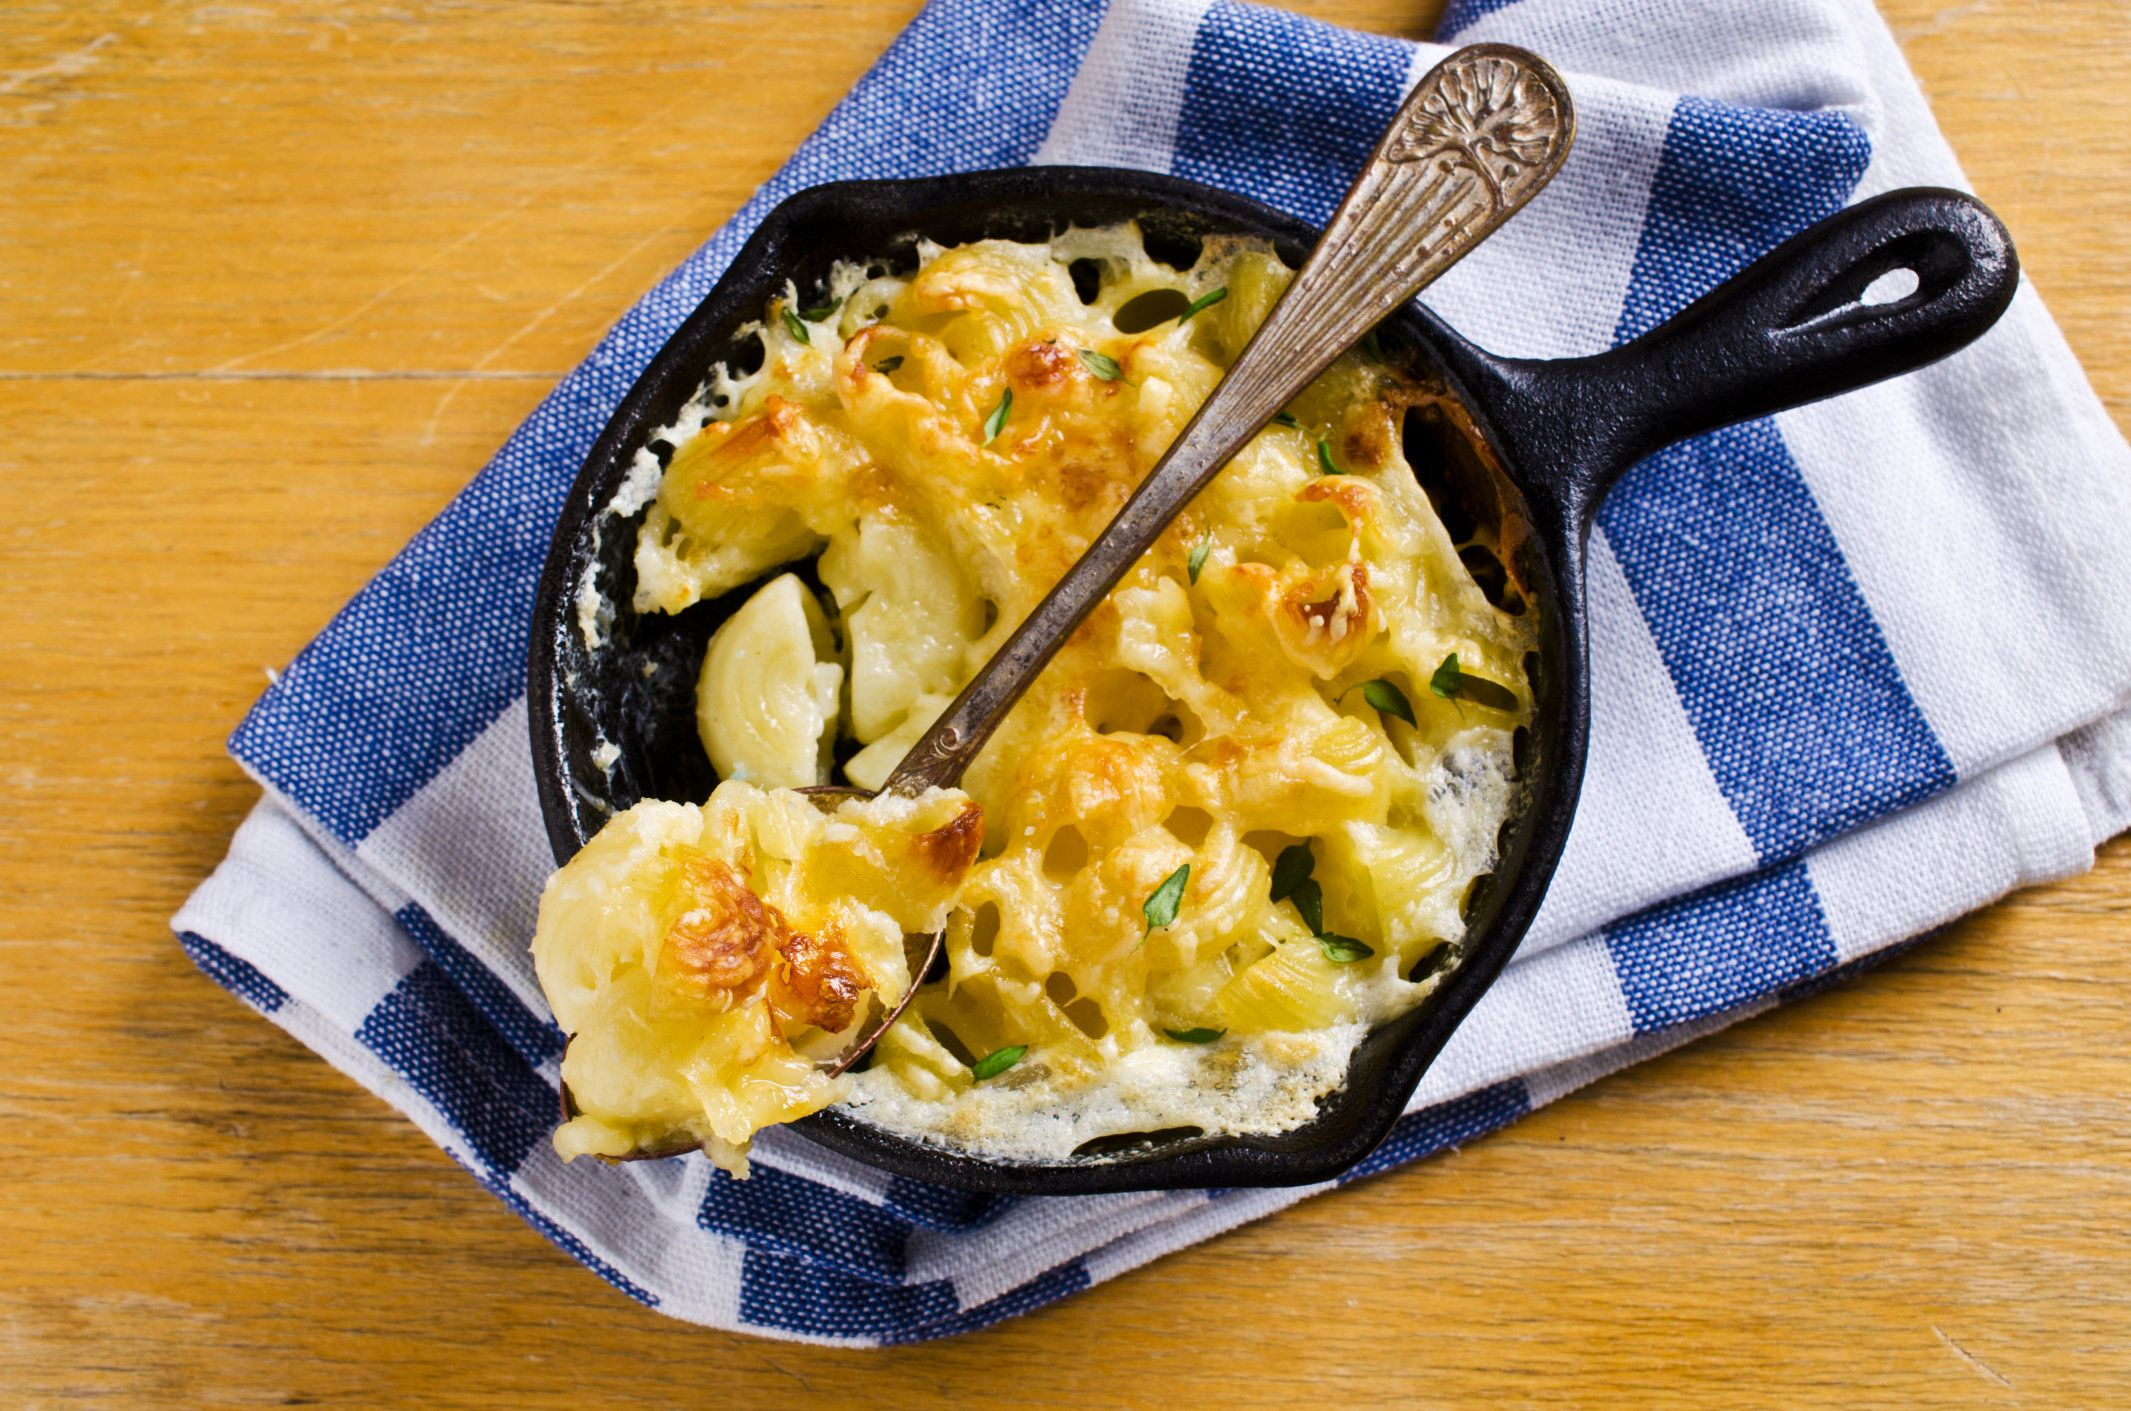 14 Reasons Why Mac And Cheese Is The Most Overrated